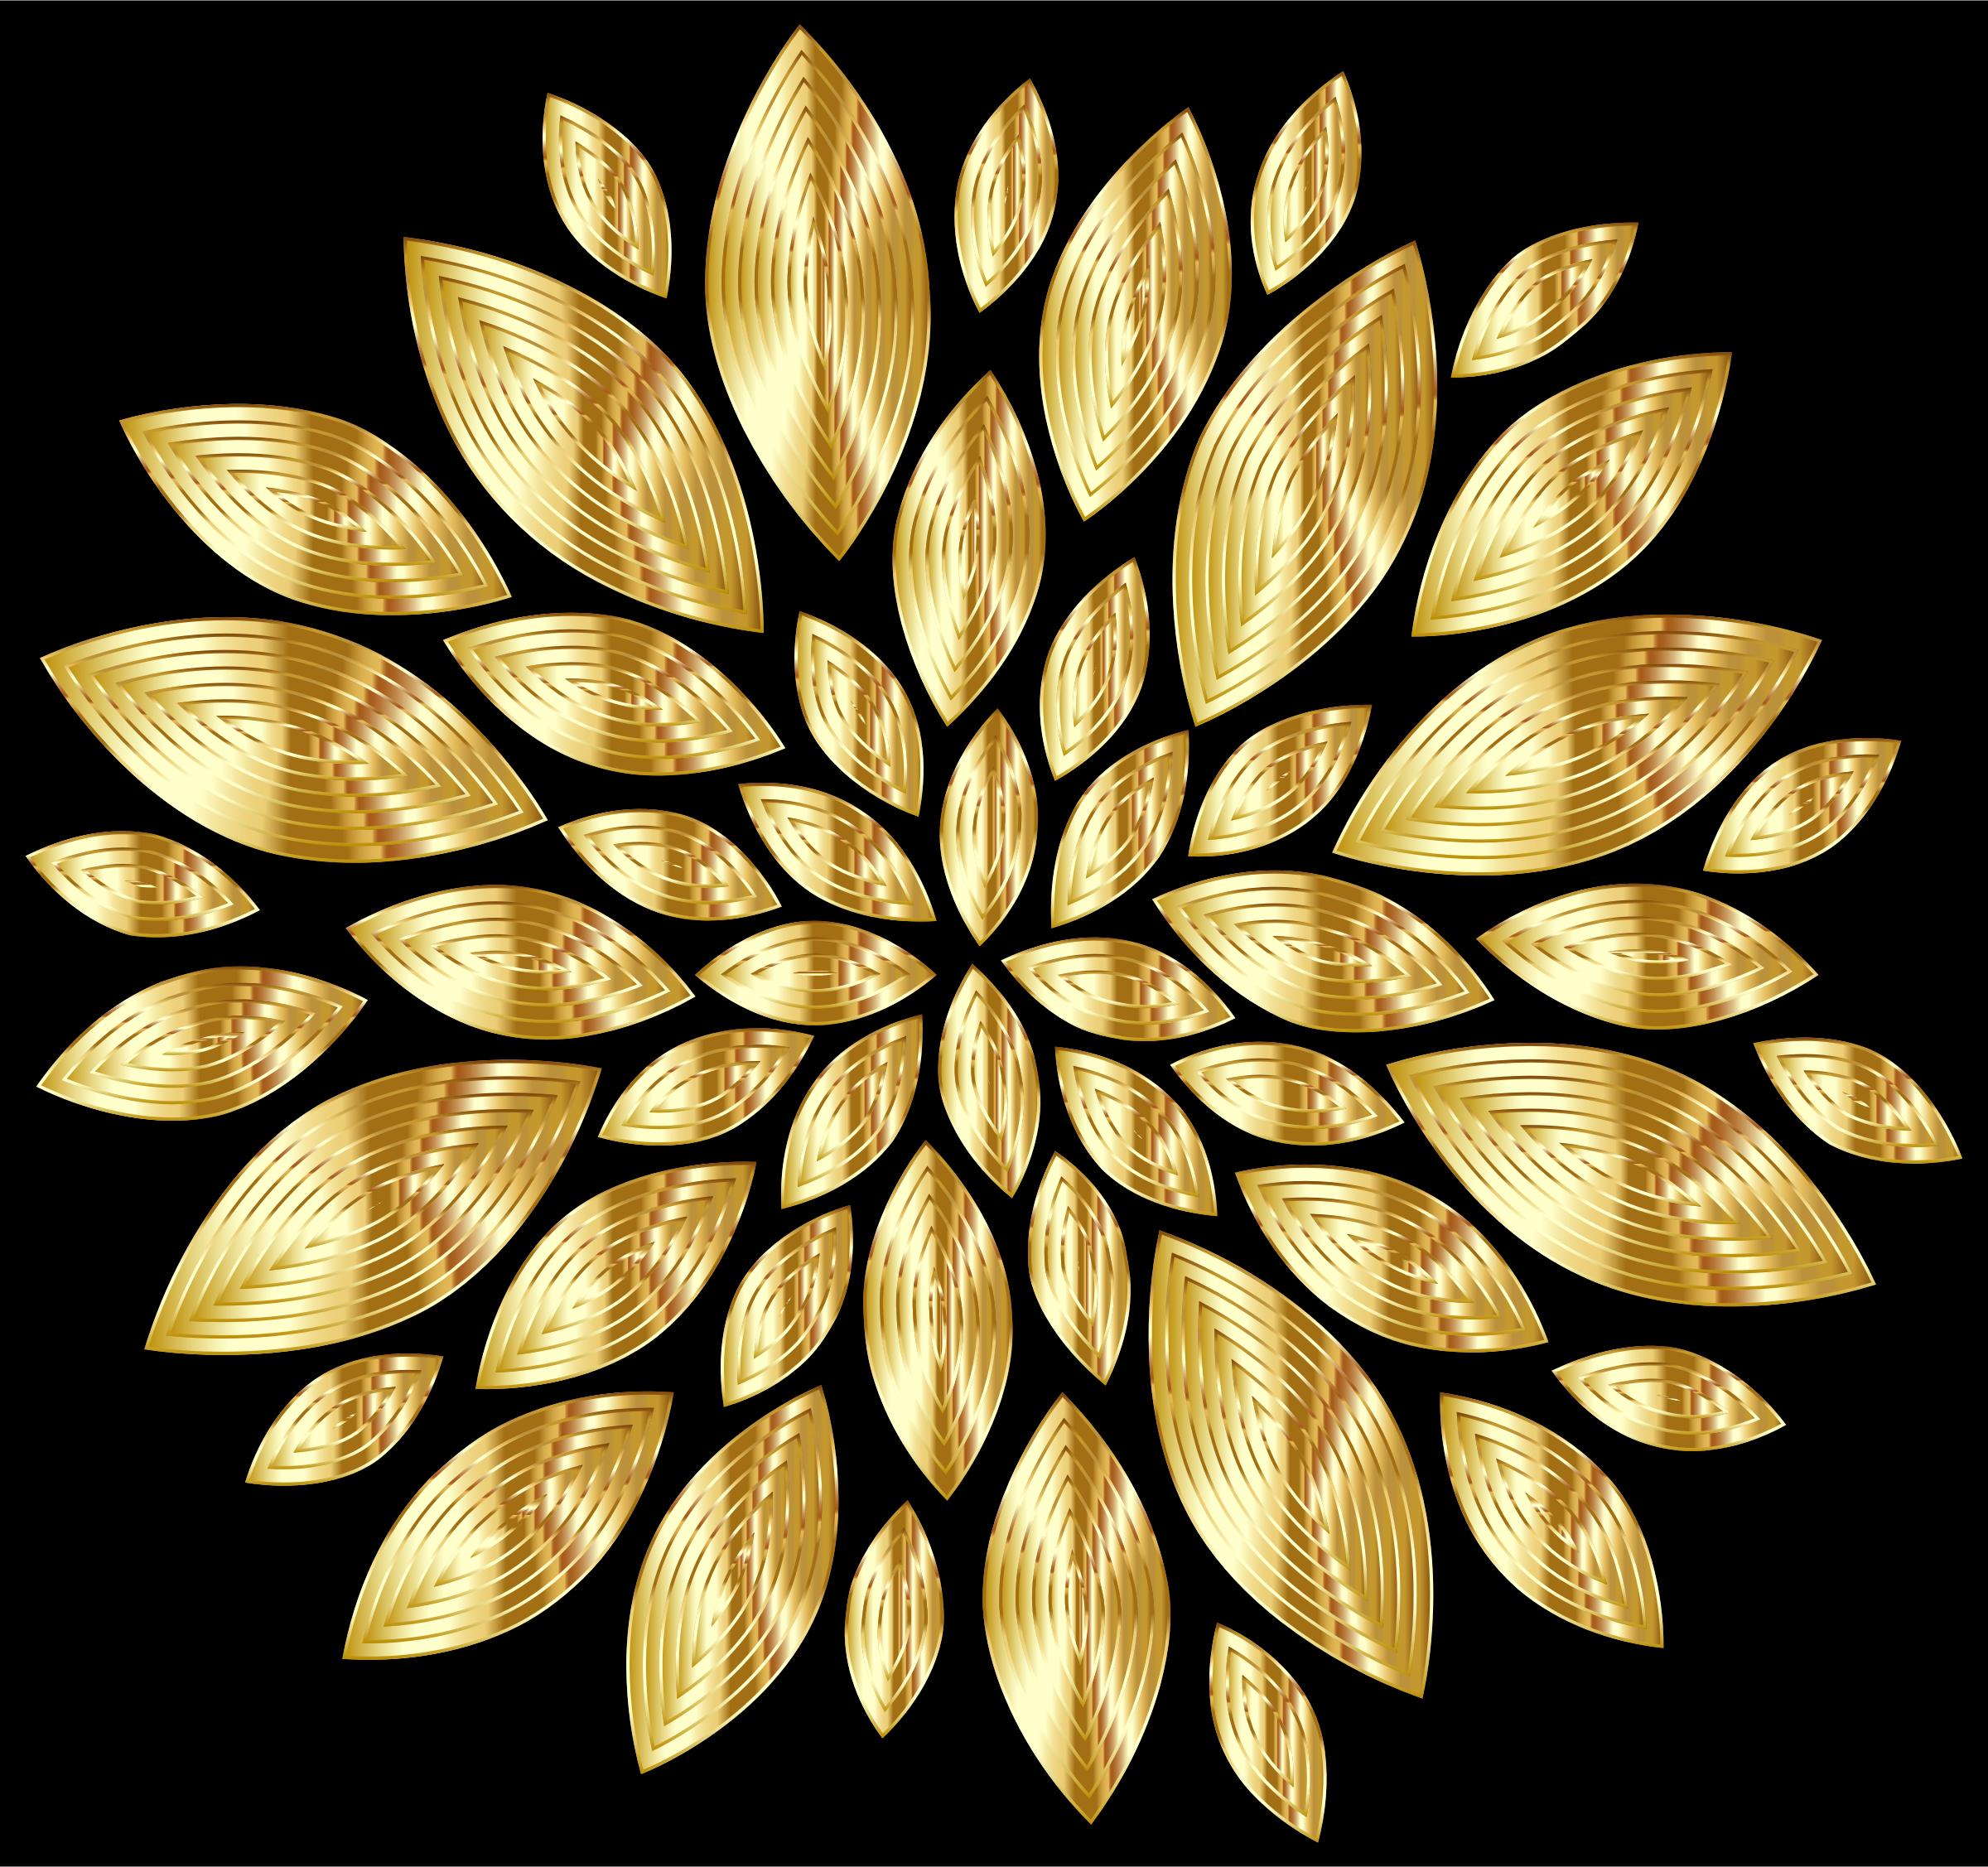 Gold Flower Petals Variation 3 With Background by GDJ